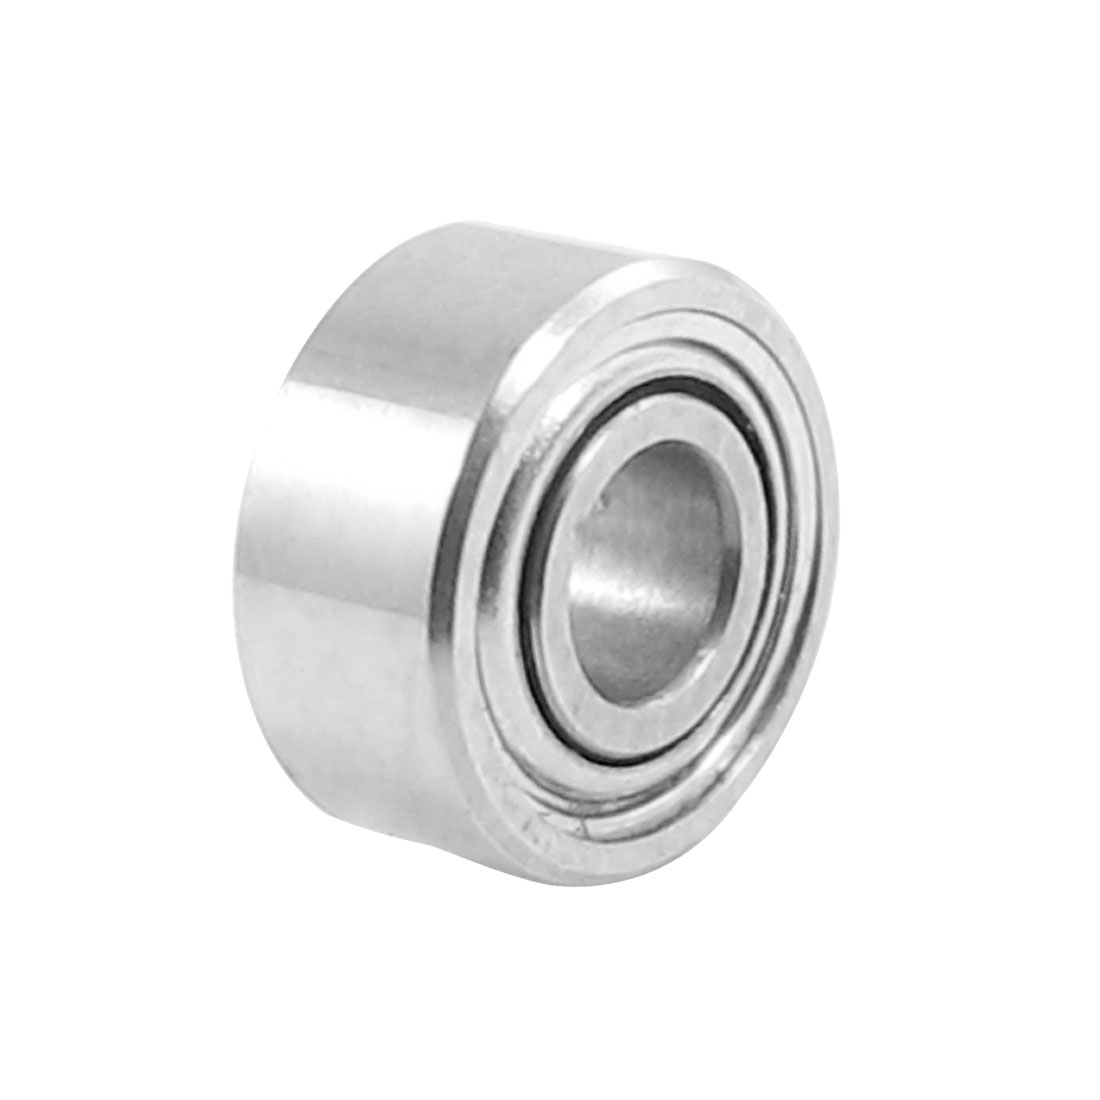 5mm x 2mm x 2.3mm Shielded Deep Groove Ball Shaft Bearing Silver Tone